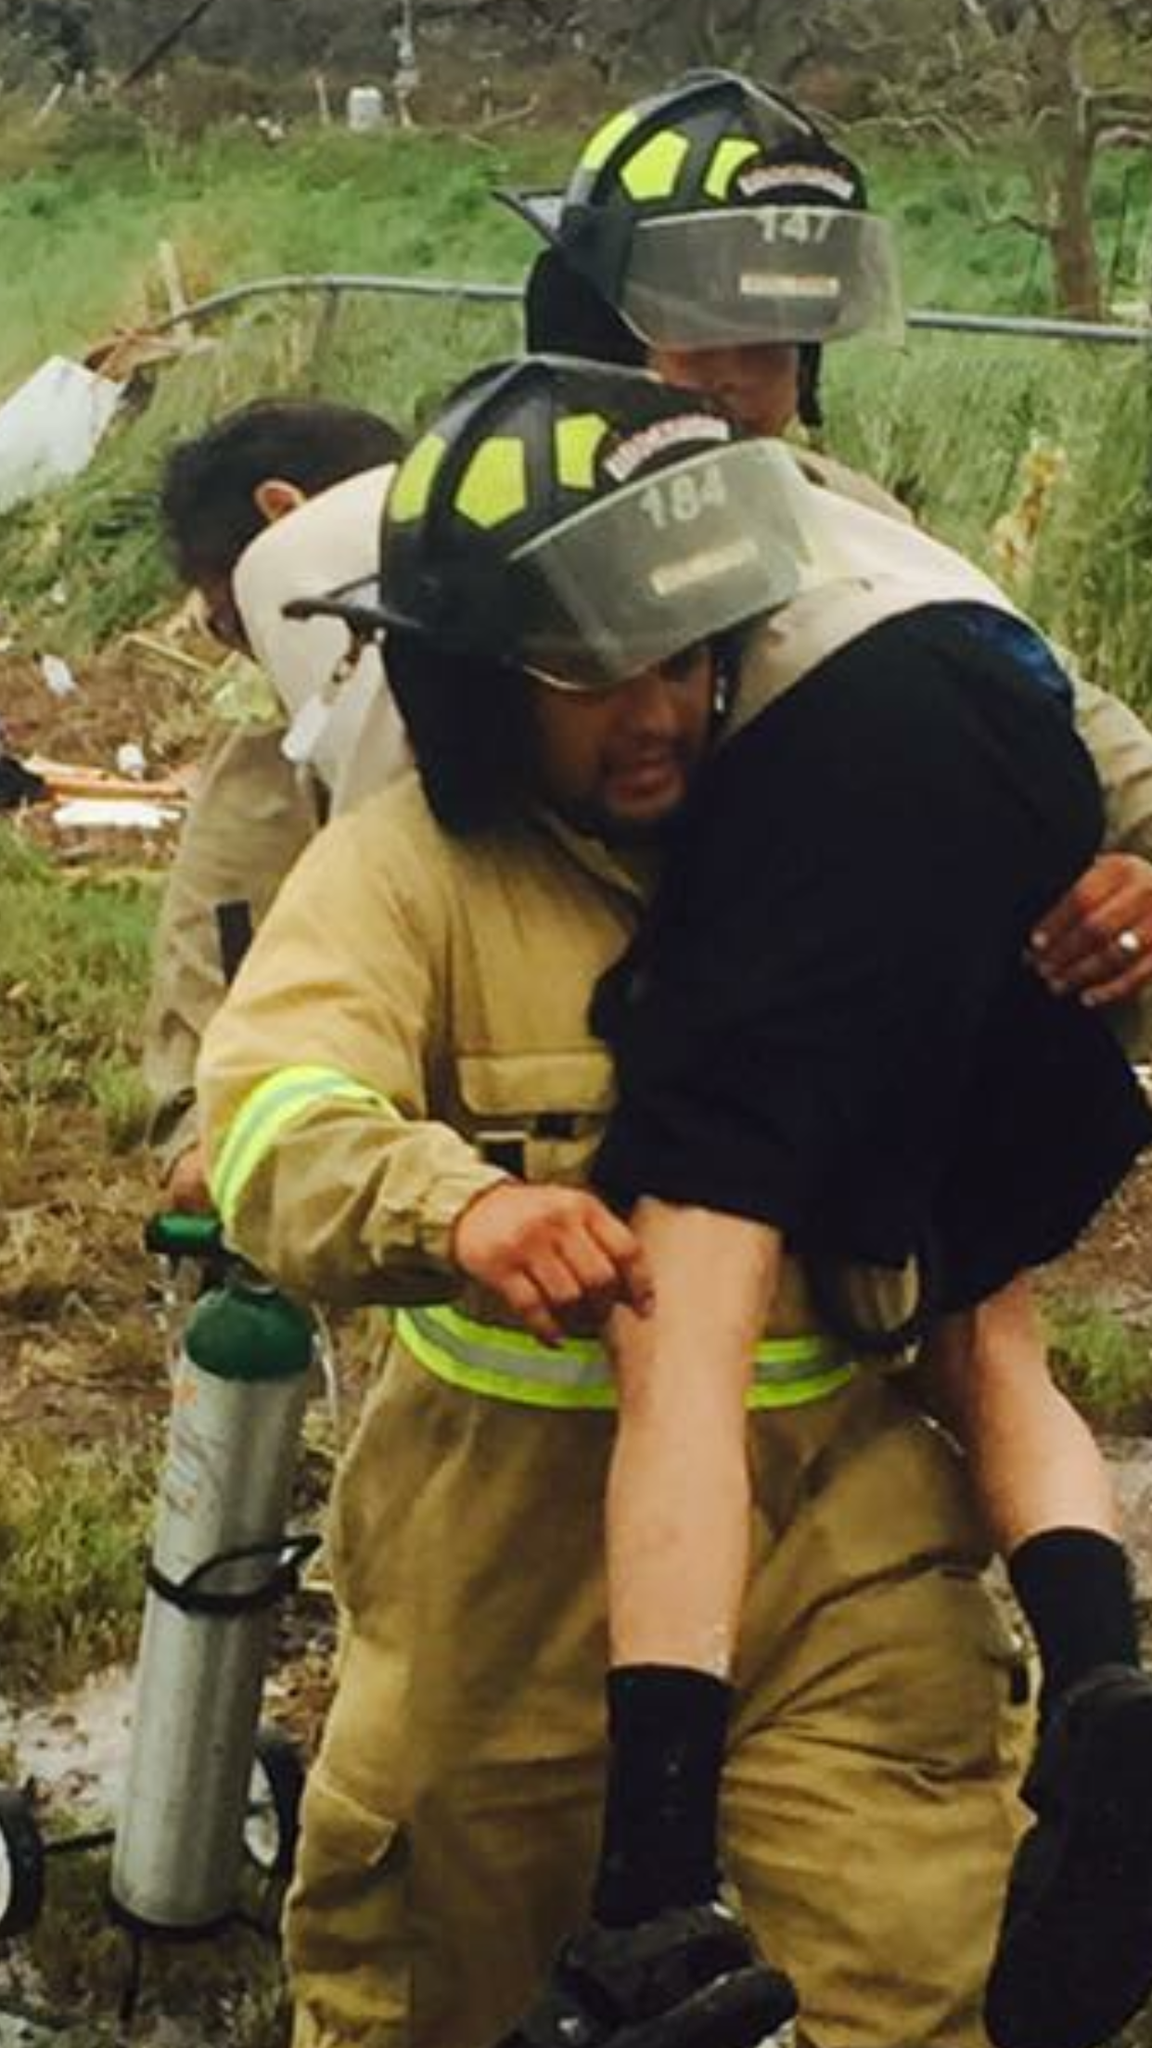 Aaron Guerrero, a Rockport volunteer firefighter, lifts a man after Hurricane Harvey hit Aransas County on Aug. 25, 2017.